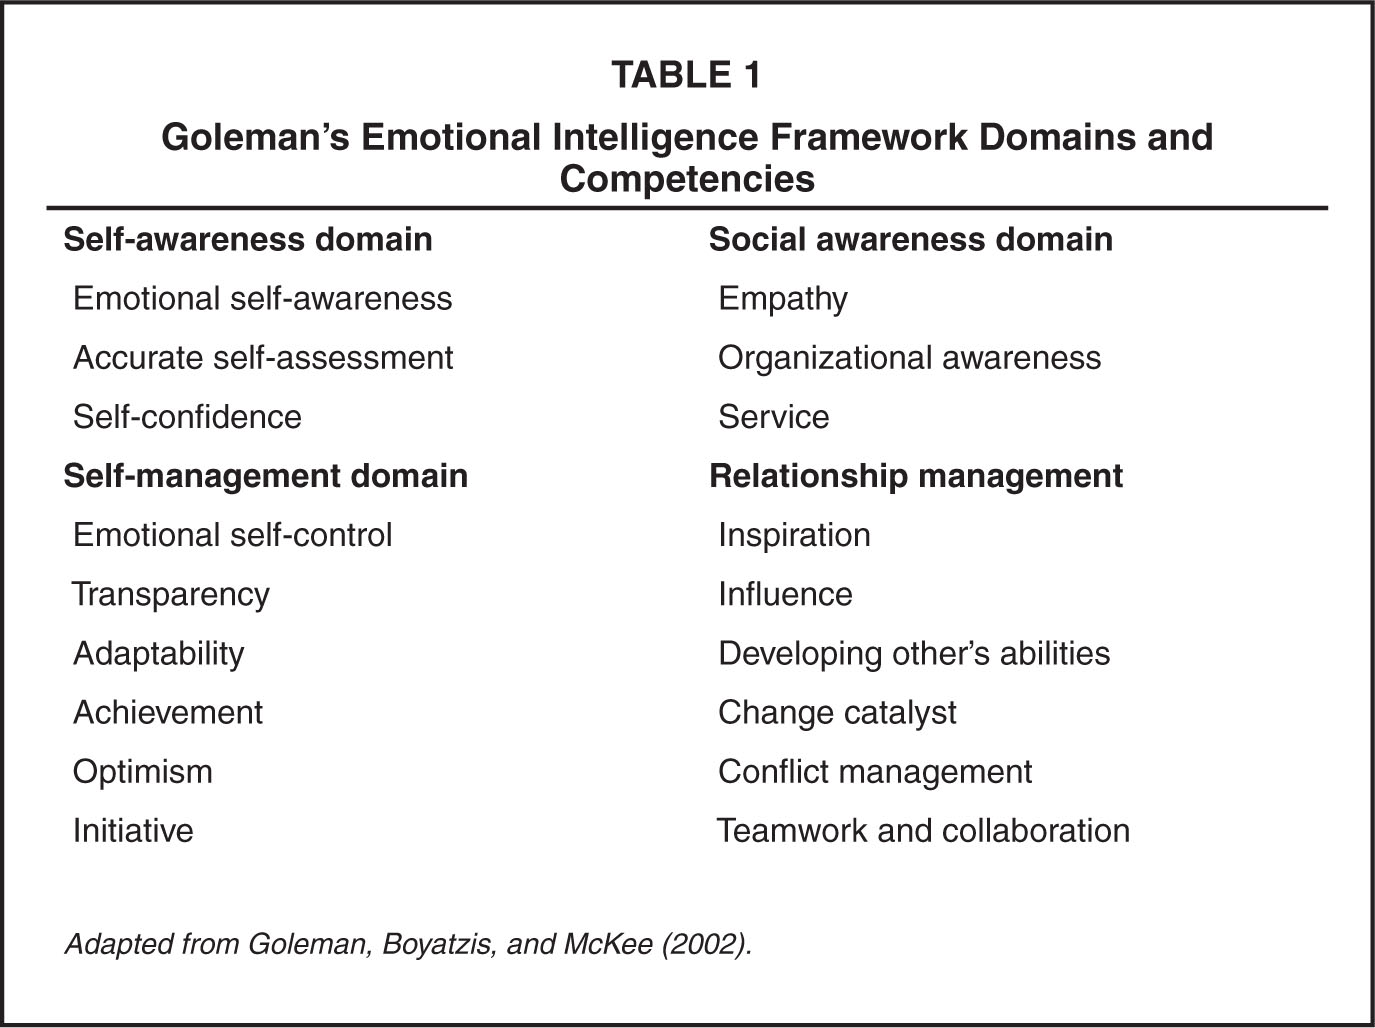 Goleman's Emotional Intelligence Framework Domains and Competencies